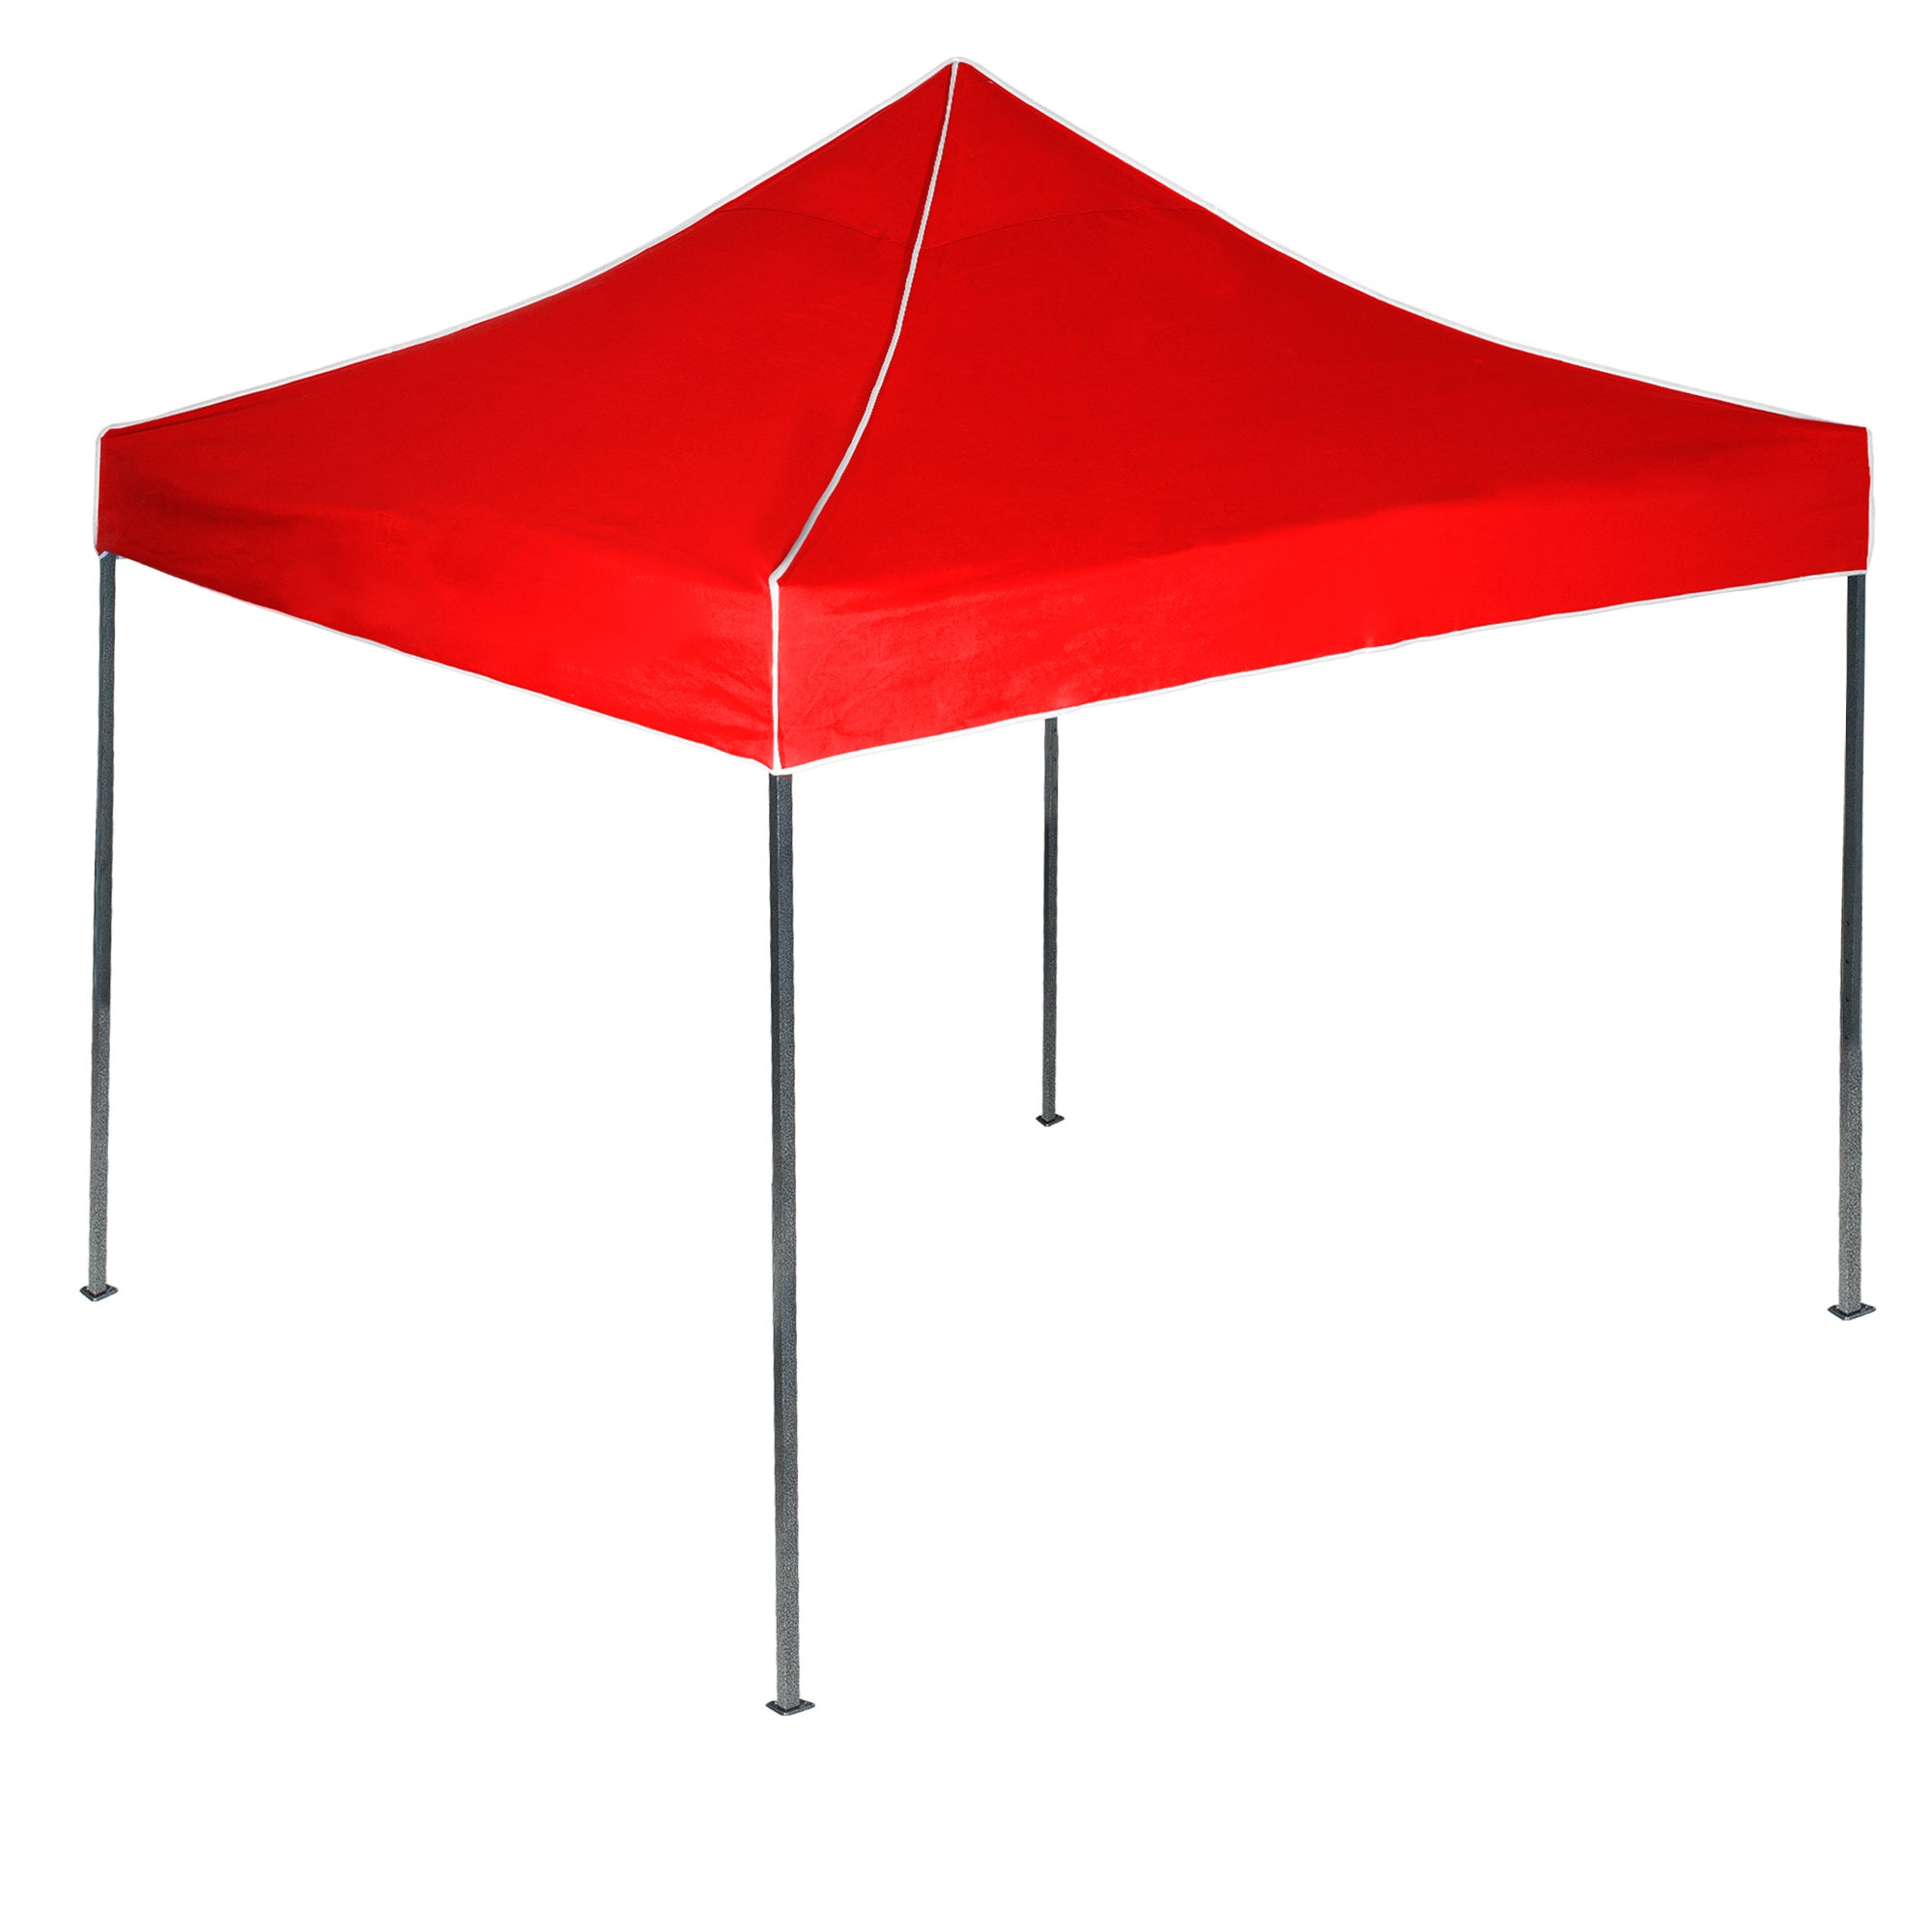 Stalwart Pop-Up Instant Canopy Tent - Free Shipping Today - Overstock.com - 17499610  sc 1 st  Overstock.com & Stalwart Pop-Up Instant Canopy Tent - Free Shipping Today ...